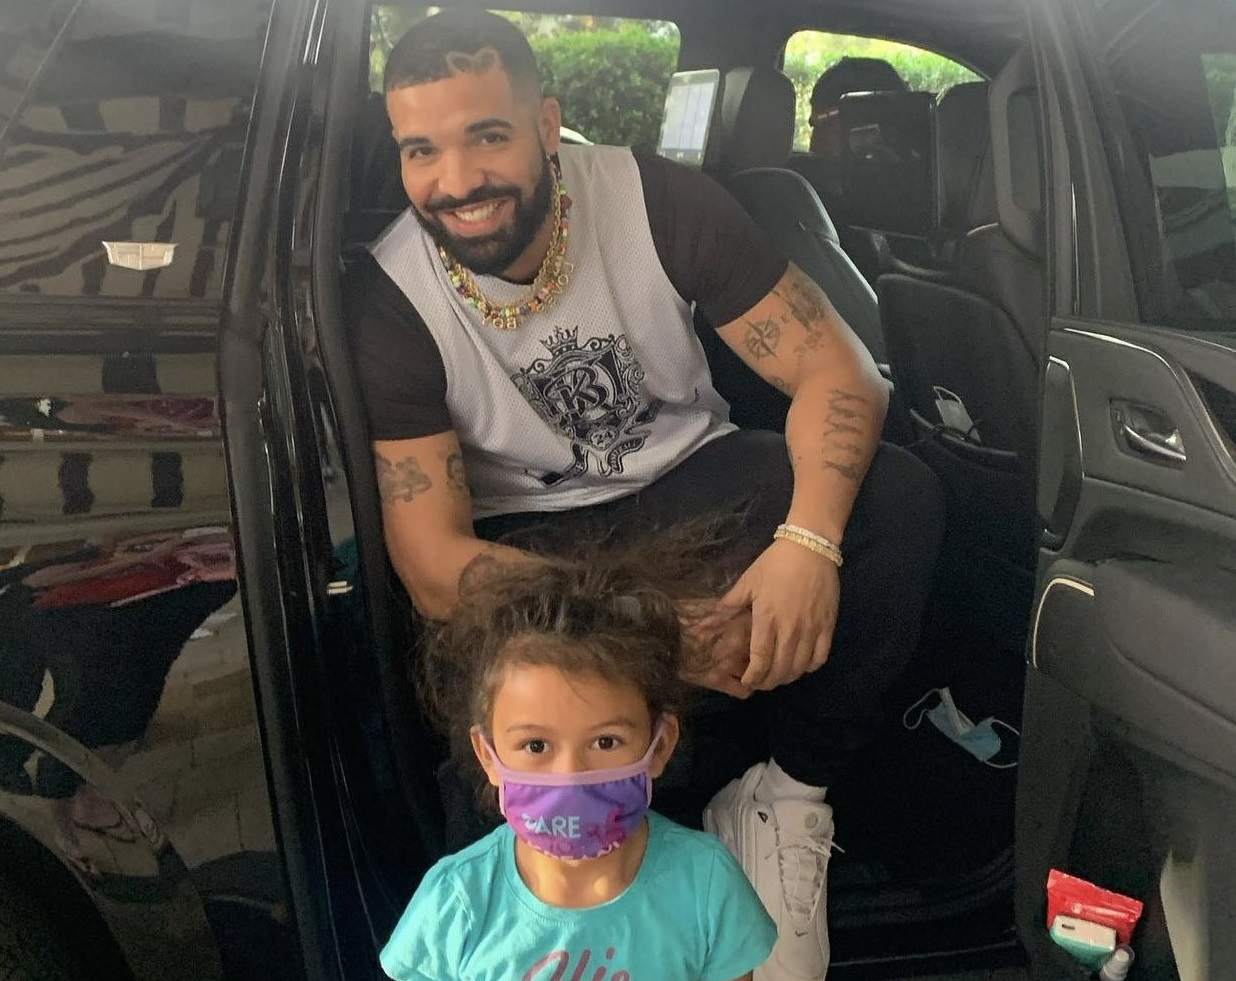 Drake Signs 'Views' Vinyl For Young Fan